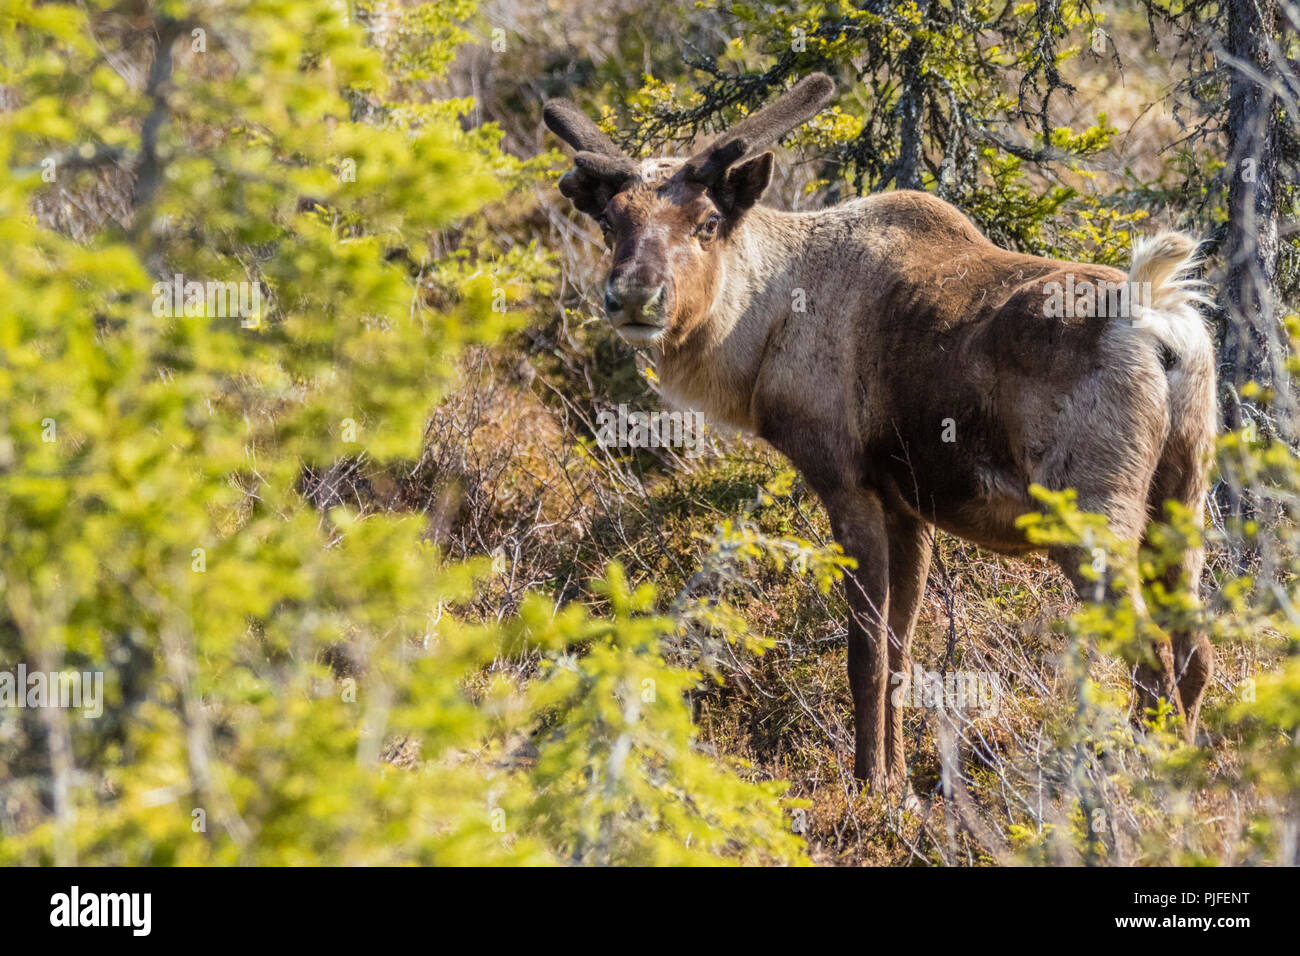 Reindeer, Rangifer tarandus standing and looking in to the camera, Gällivare county, Swedish Lapland, Sweden - Stock Image